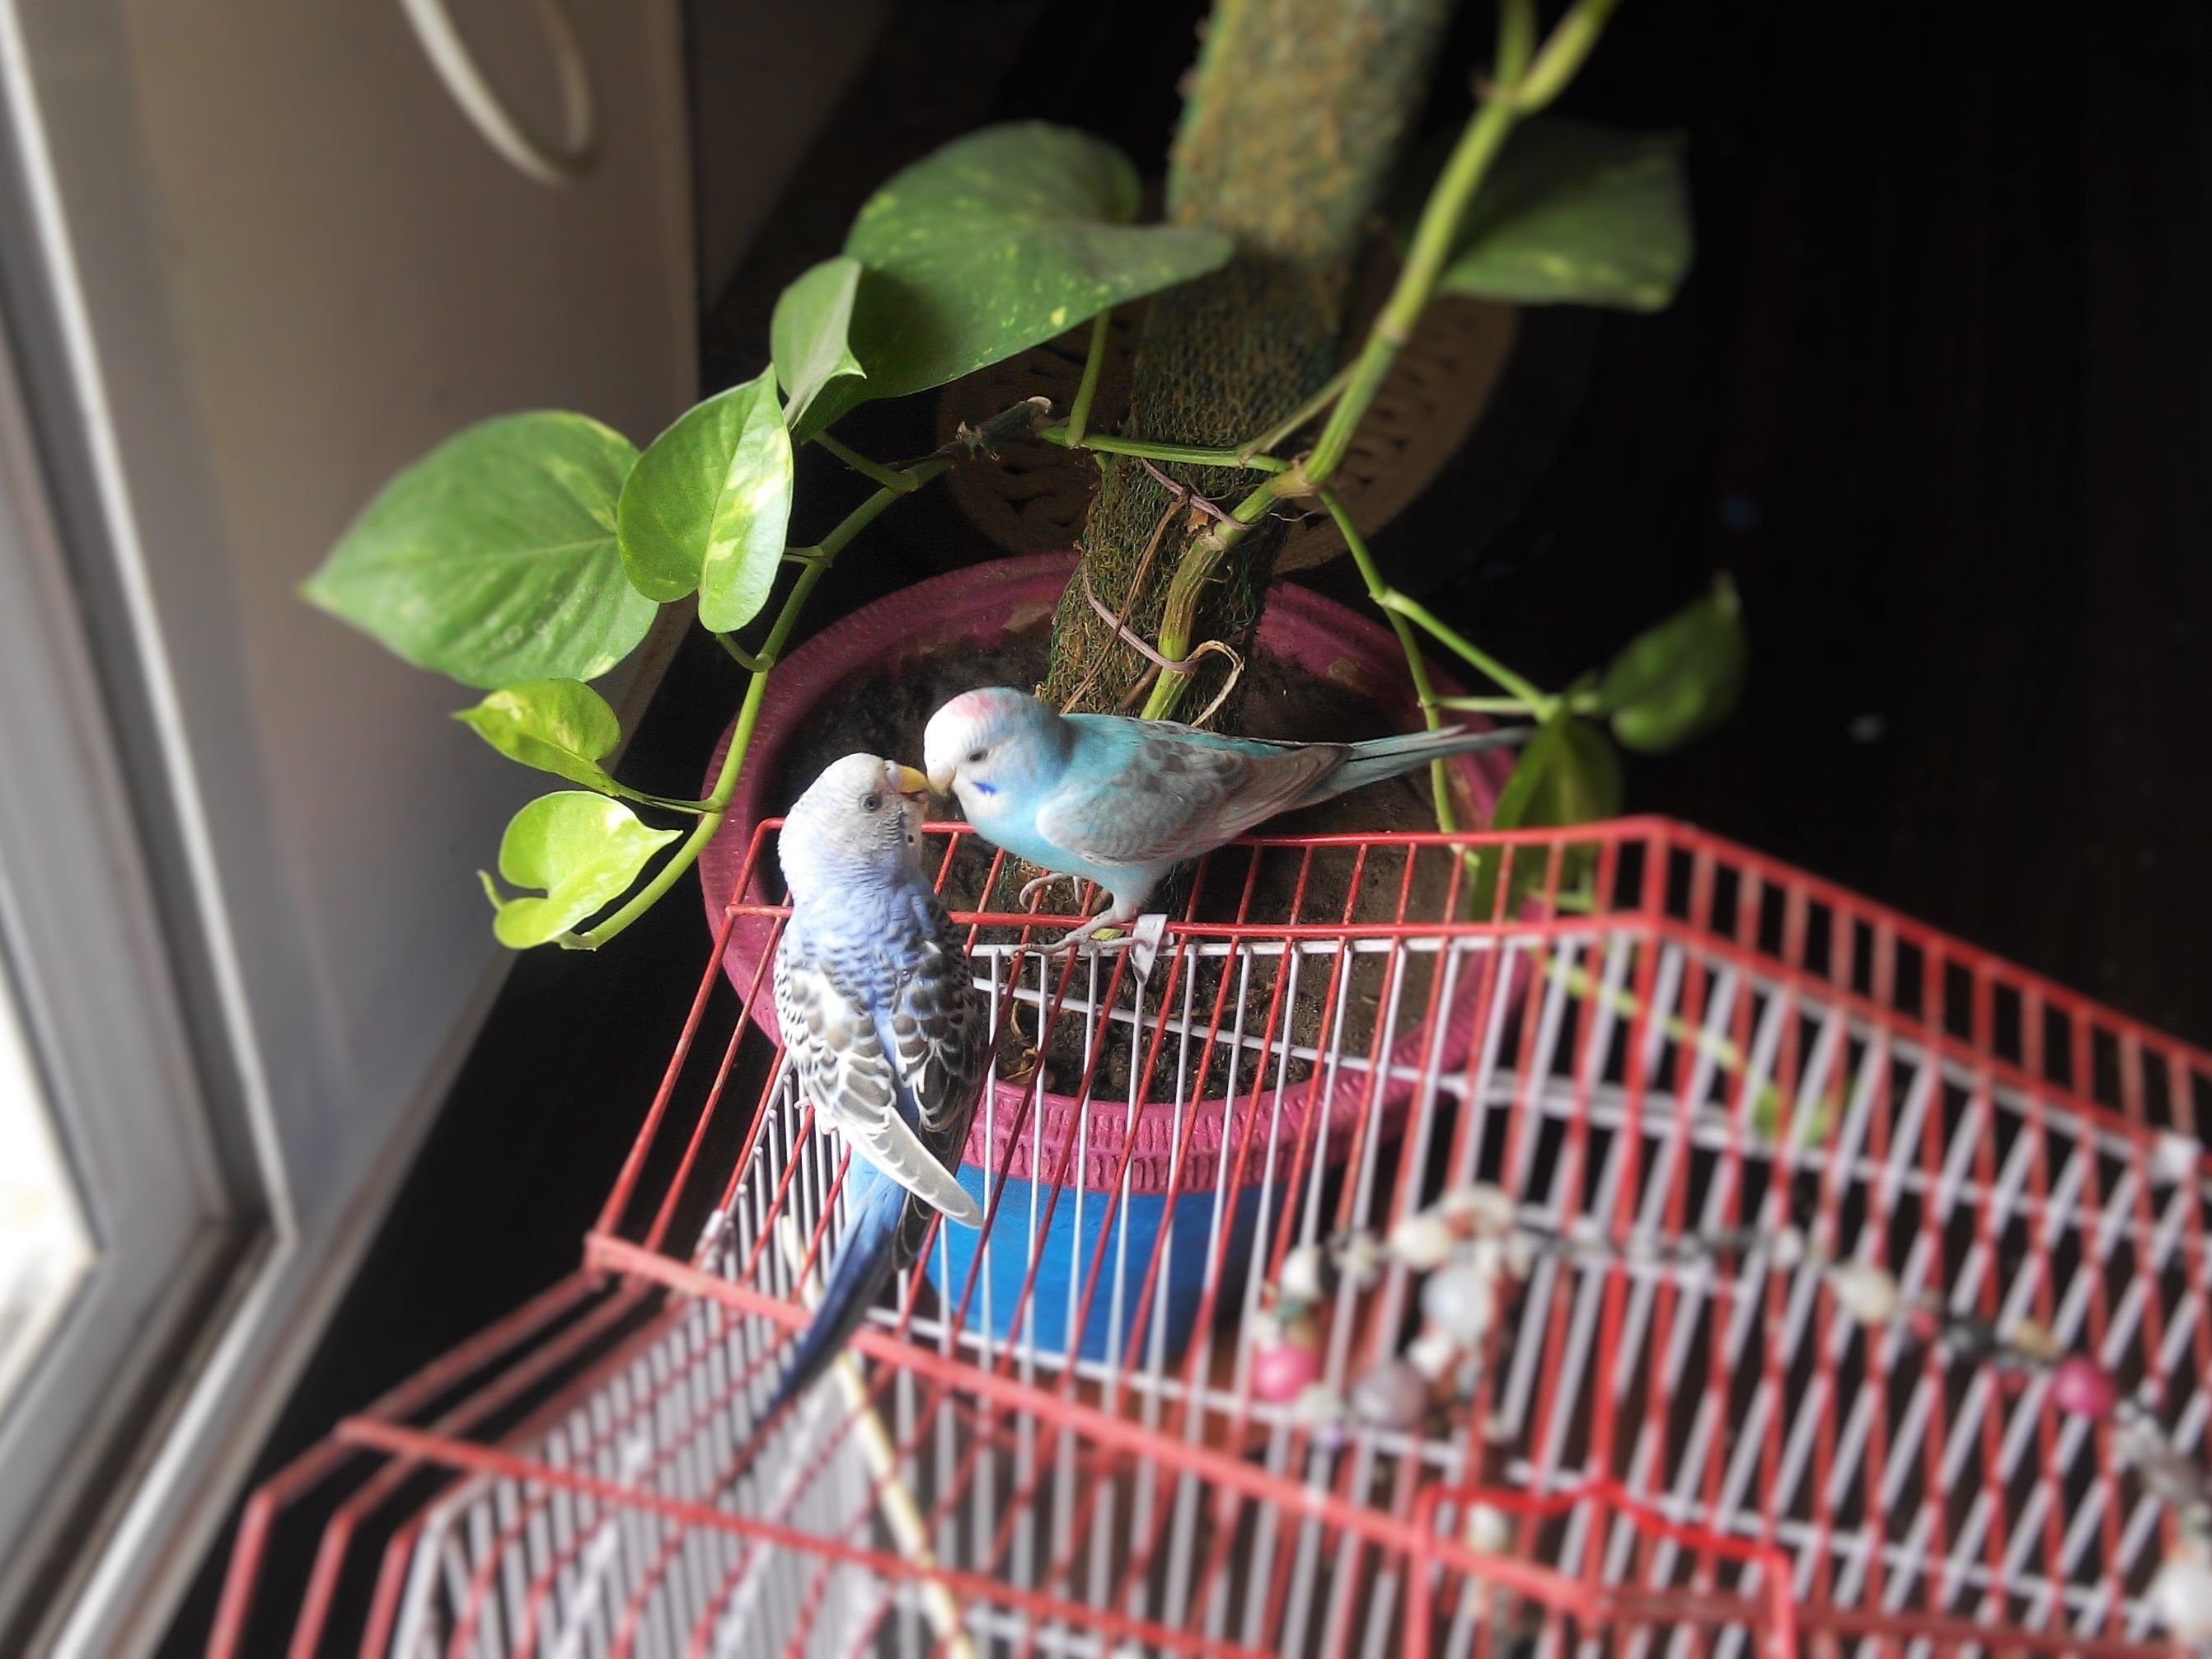 eac34c16d Why You Should Keep Your Bird Inside